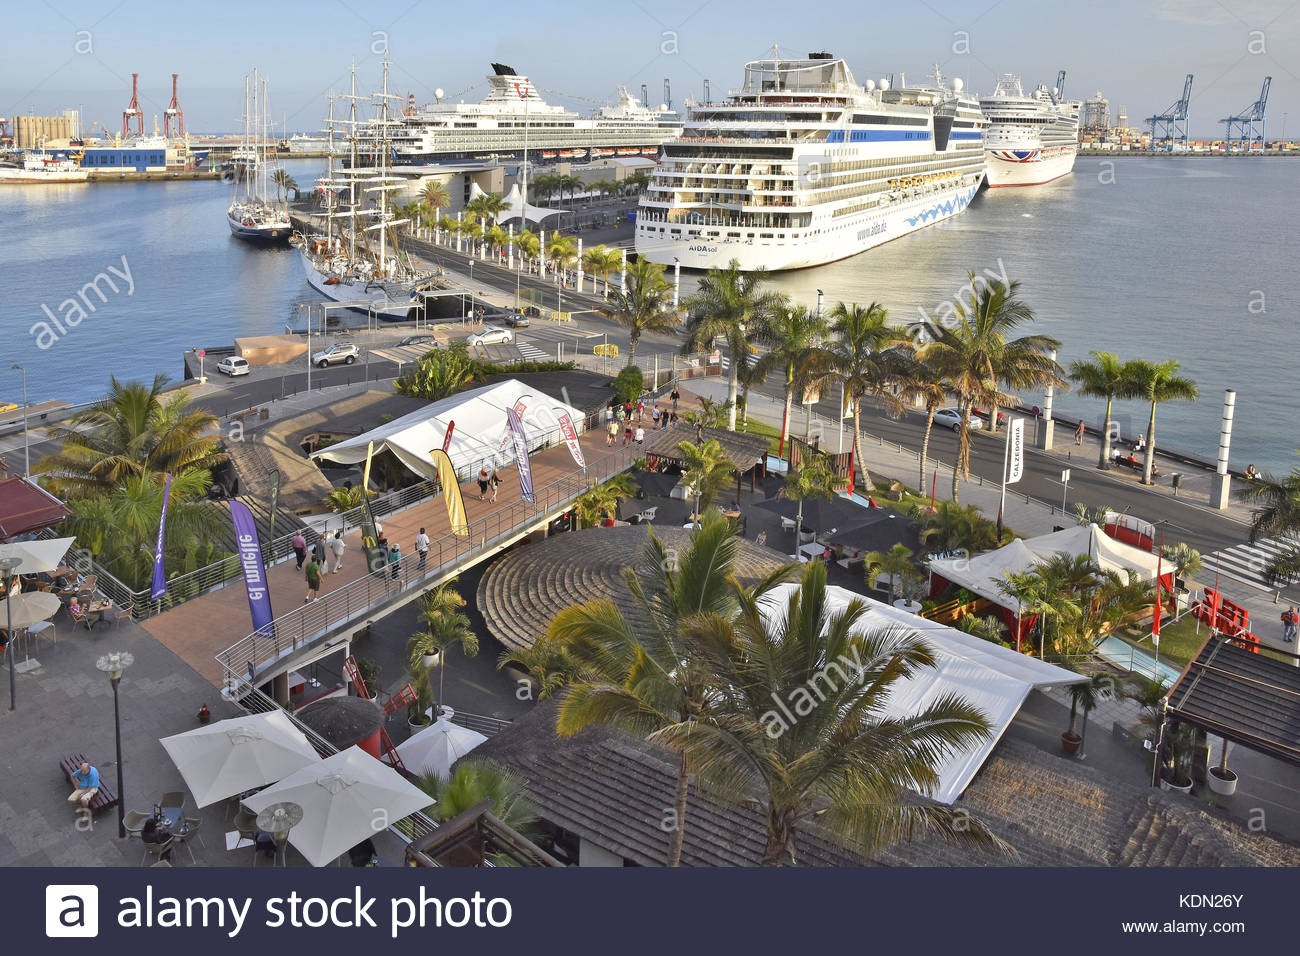 Las palmas gran canaria stock photos las palmas gran canaria stock images alamy - Port of las palmas gran canaria ...